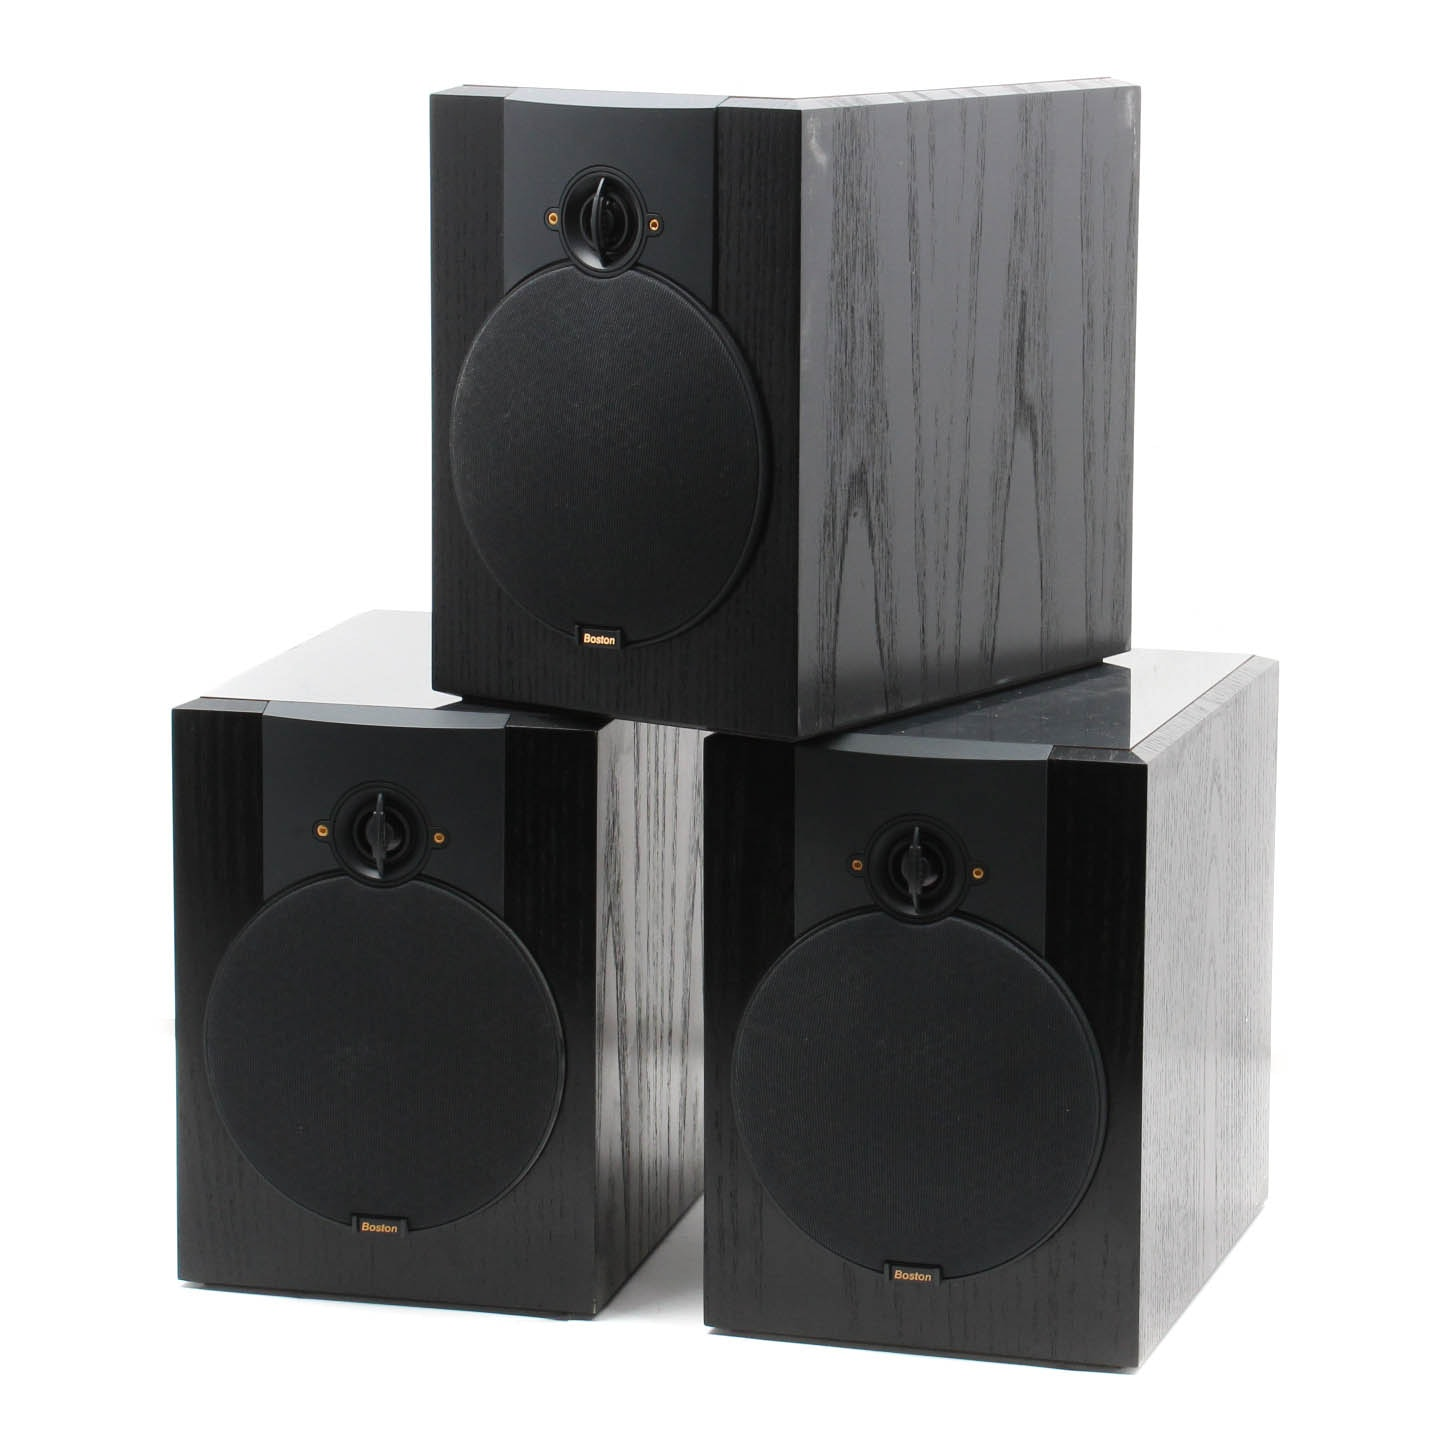 Boston Acoustics Video Reference Monitor Speakers